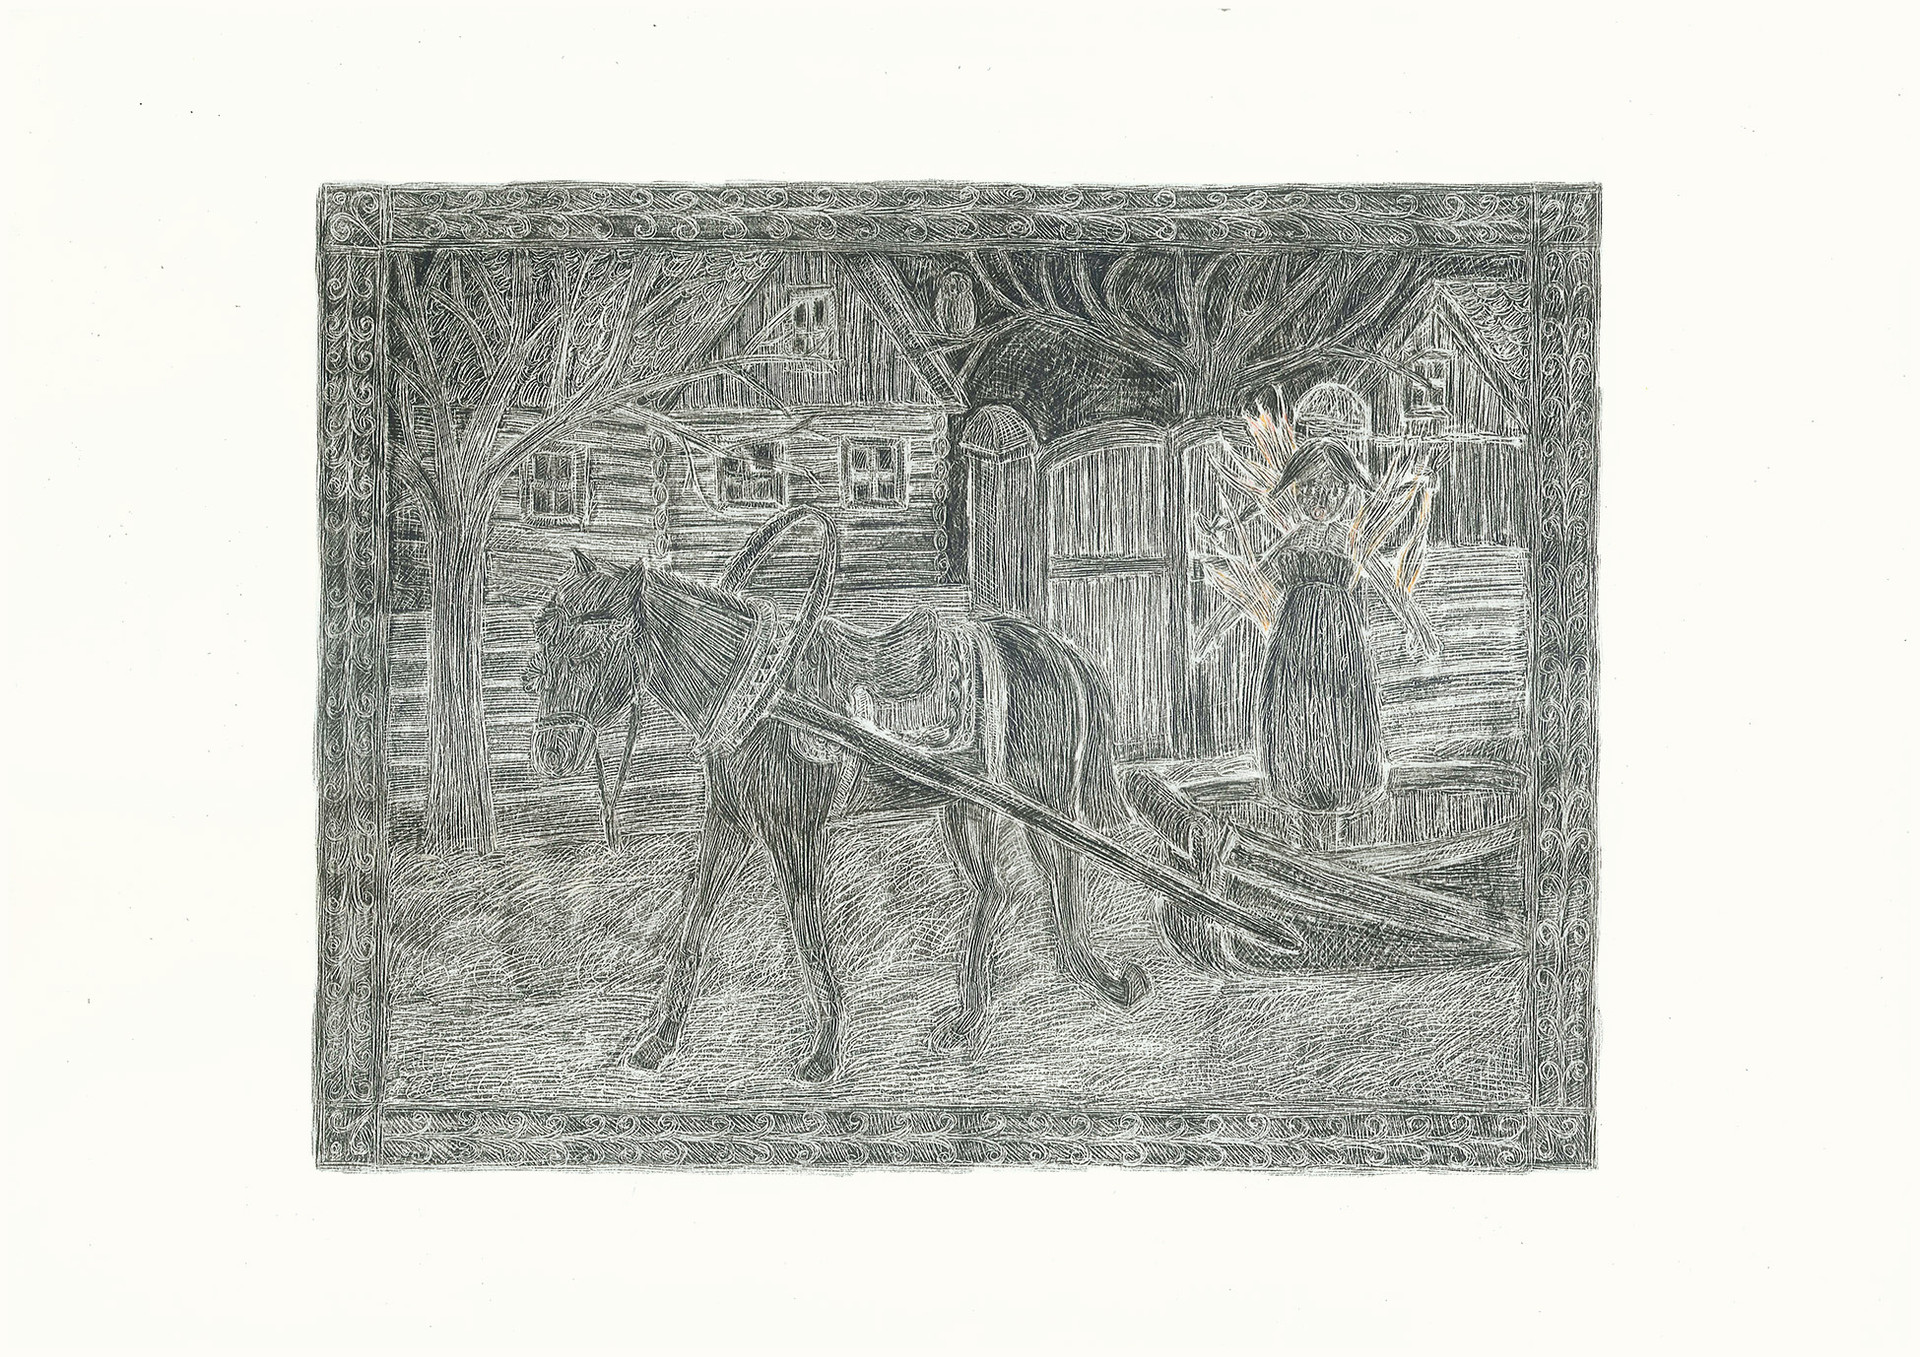 Burning Girl in a Horse Carriage 2012. Pencils on paper, 29.7 × 42 cm